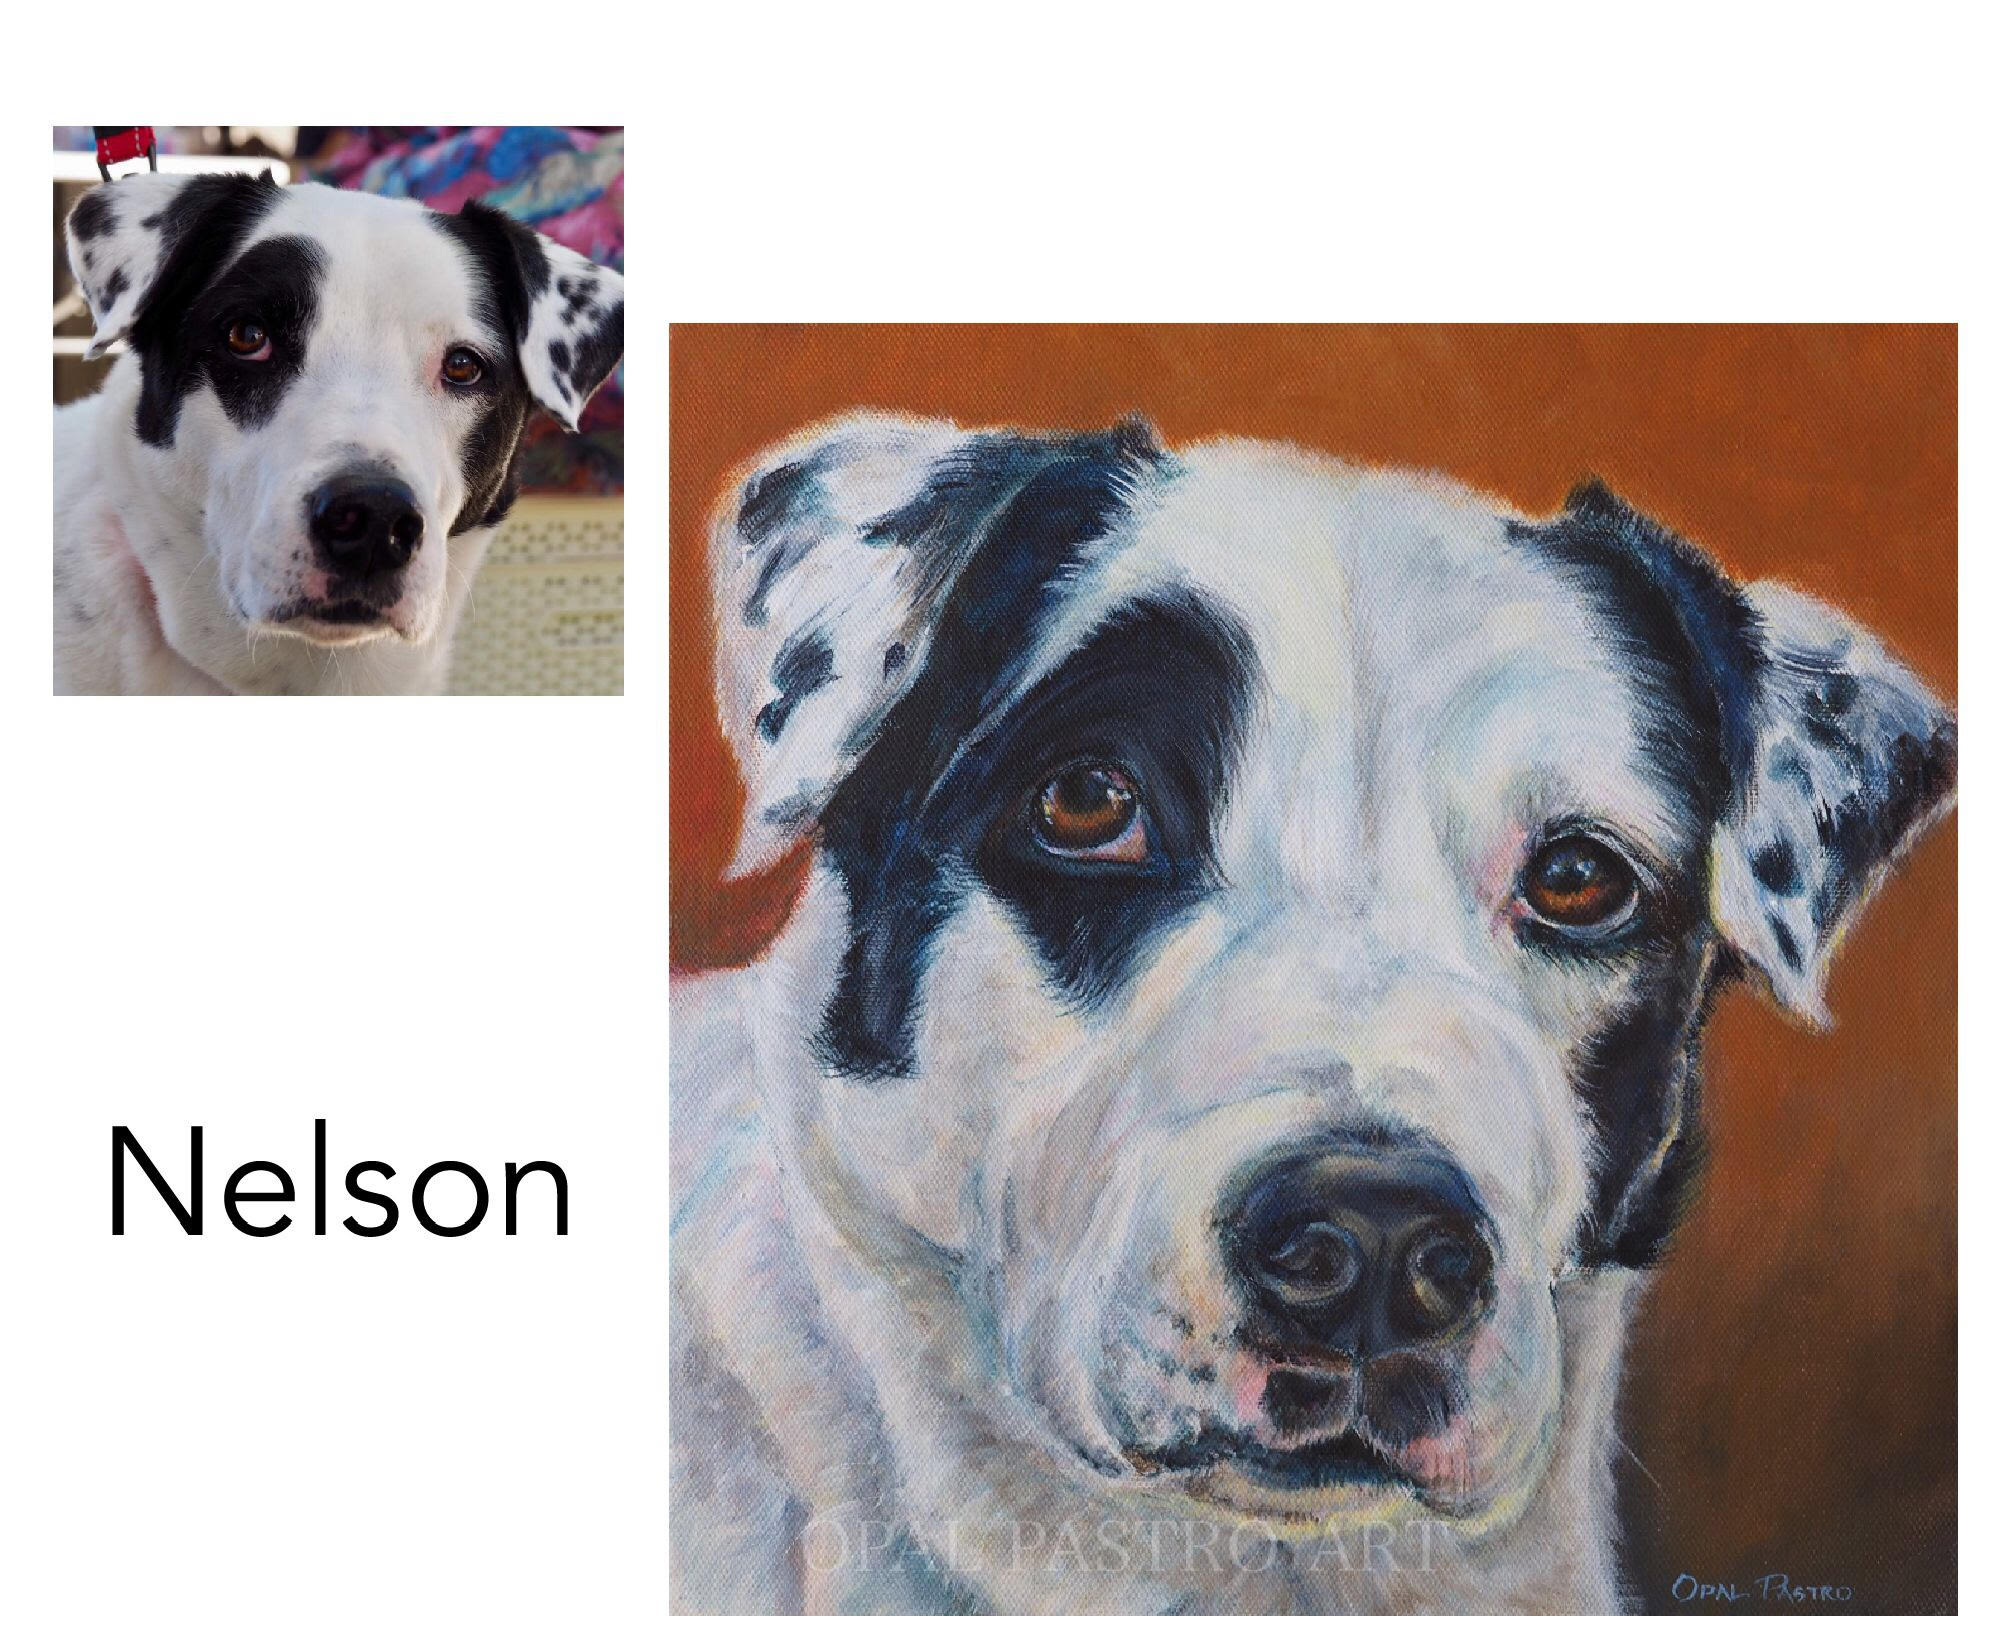 Labrador/Dane mix - Acrylic on canvasPrivate commissionCoffs Harbour, NSW———————————I met and photographed this beautiful gentle boy at the Harbourside Market in Coffs Harbour. He was so obliging and sat handsomely for his photo. When the painting was finished,  Lord Nelson came back to the market to collect his custom portrait